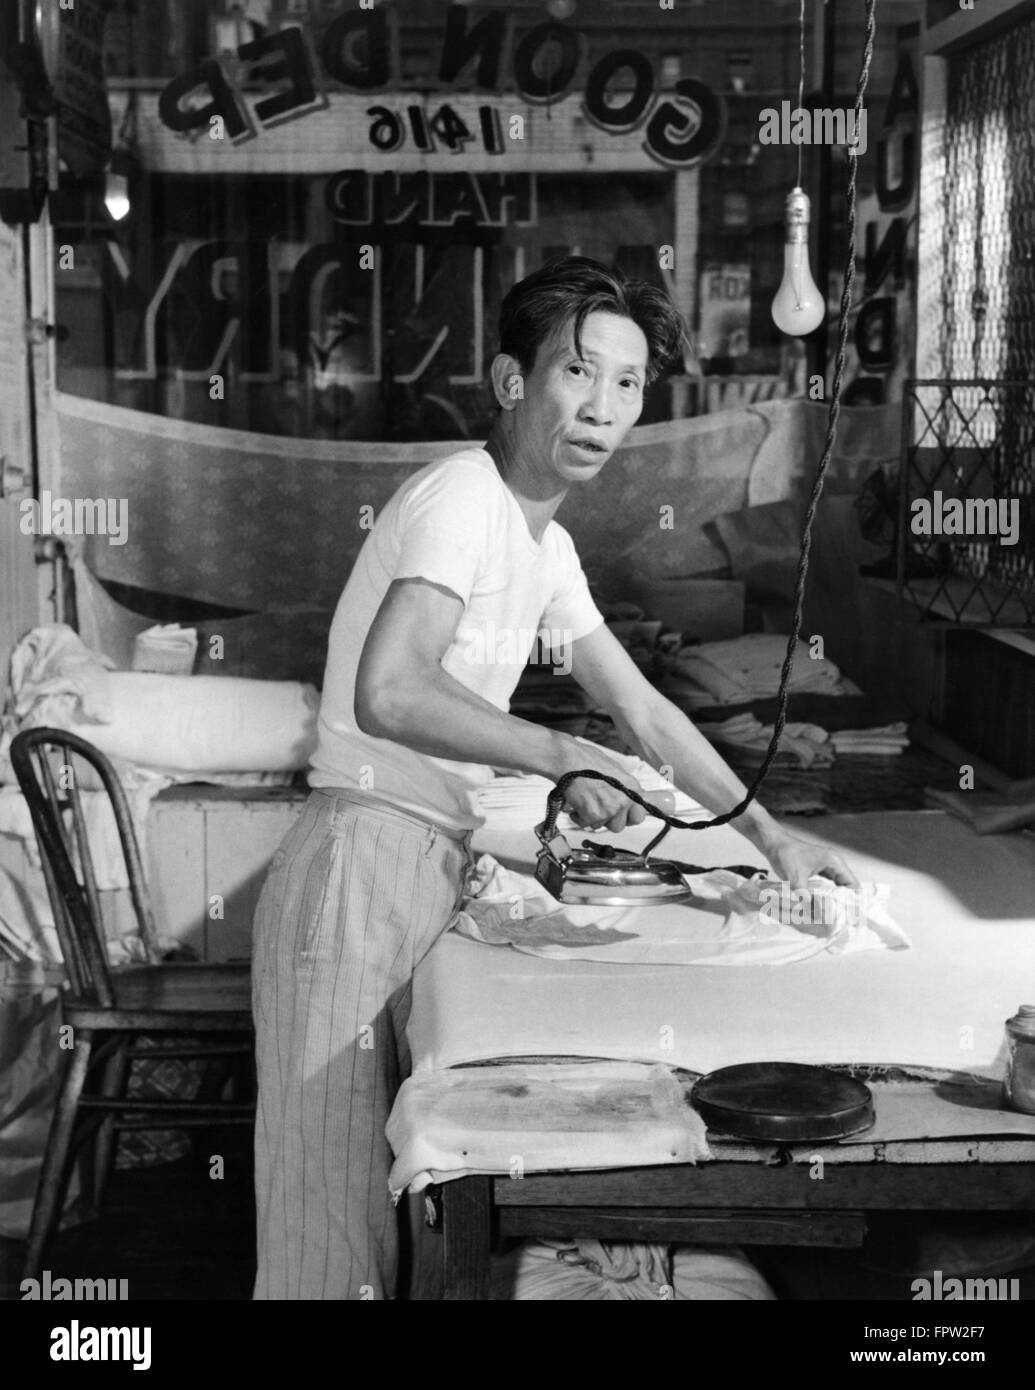 1920s-chinese-laundry-man-looking-at-cam